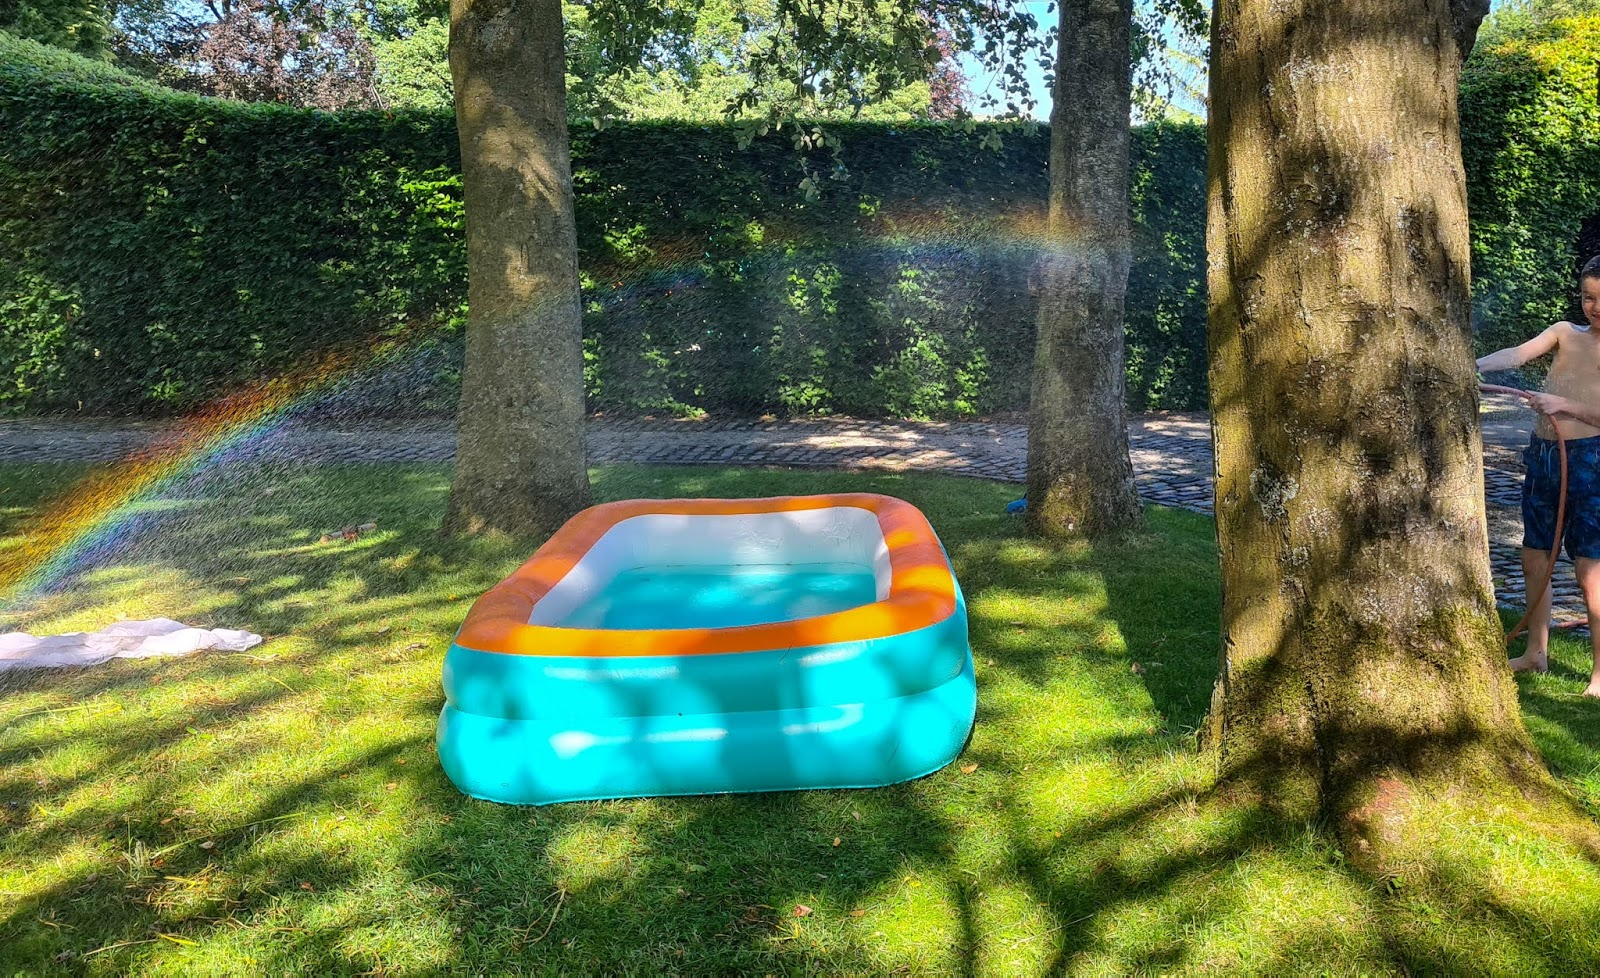 paddling pool June